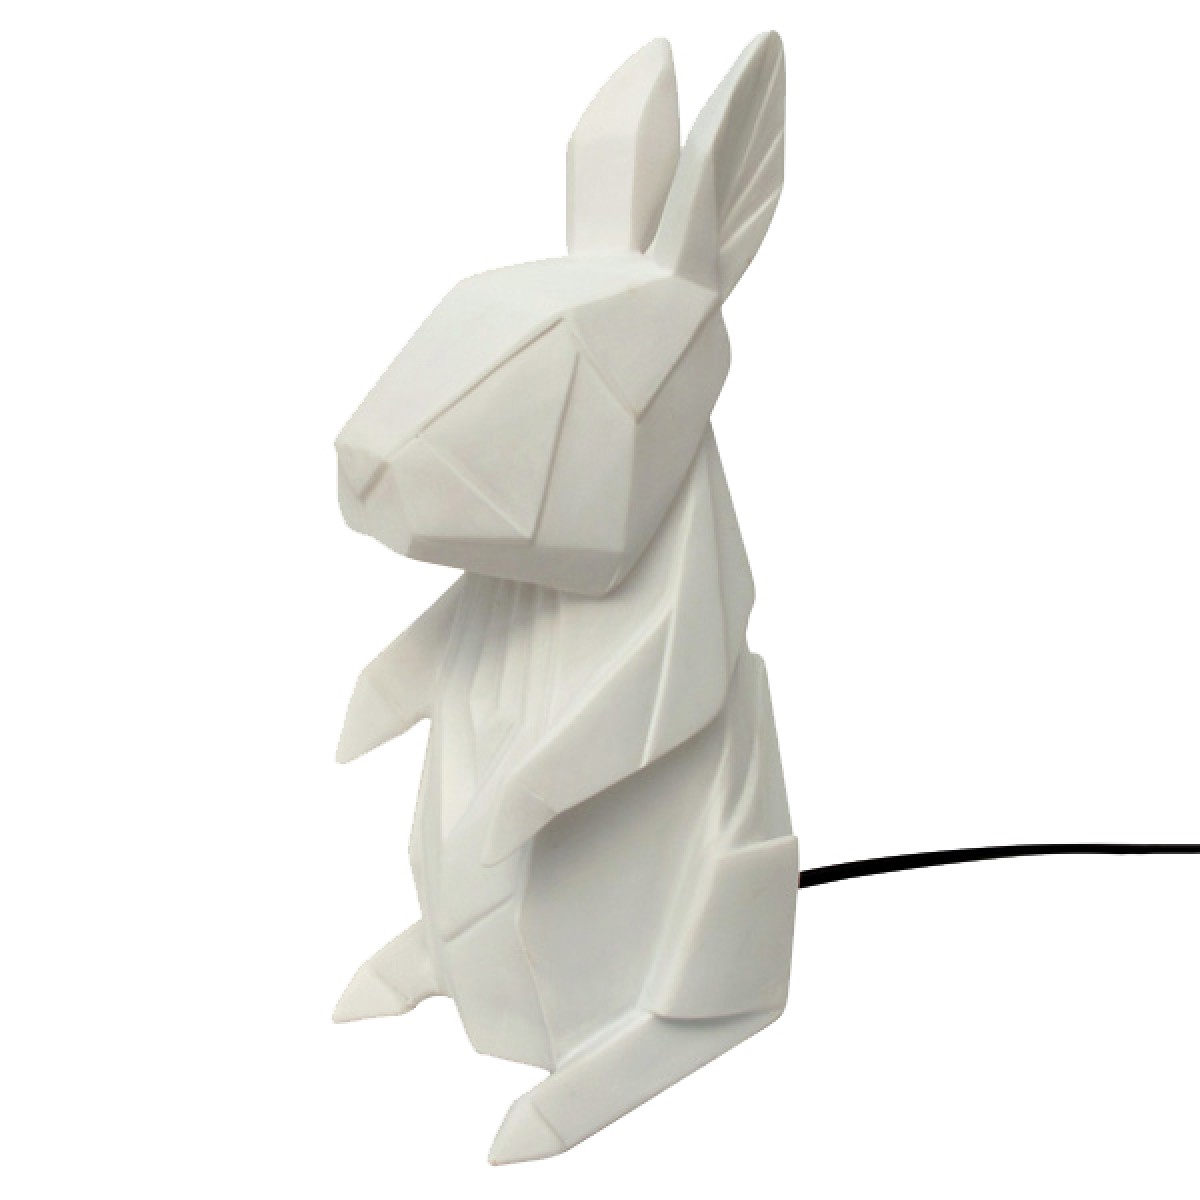 turnoff qeeboo giovannoni led outdoor by rabbit stefano lamp